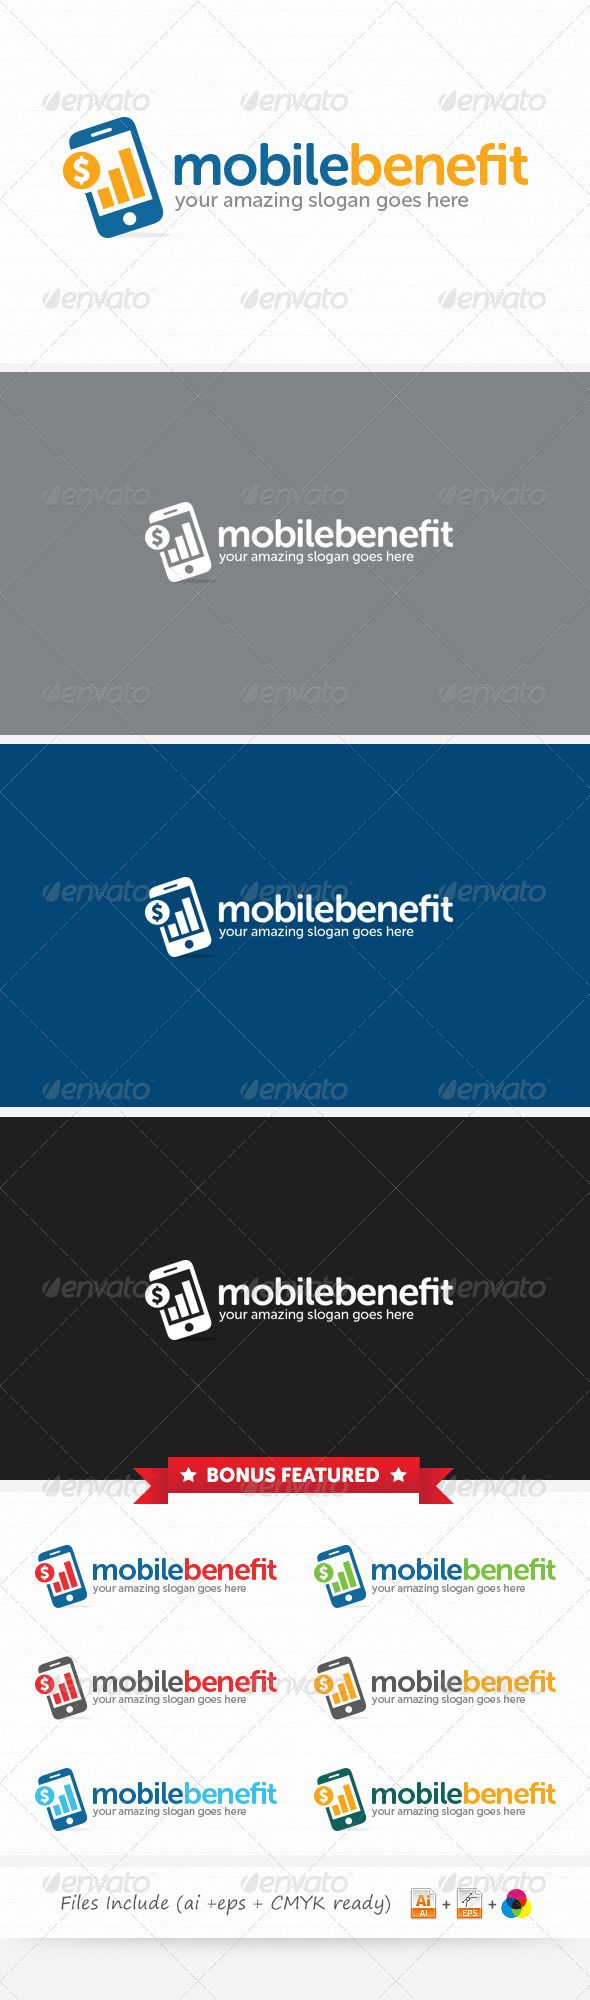 Mobile Benefit - Logo Design Template Vector #logotype Download it here: http://graphicriver.net/item/mobile-benefit-logo/6068603?s_rank=457?ref=nexion